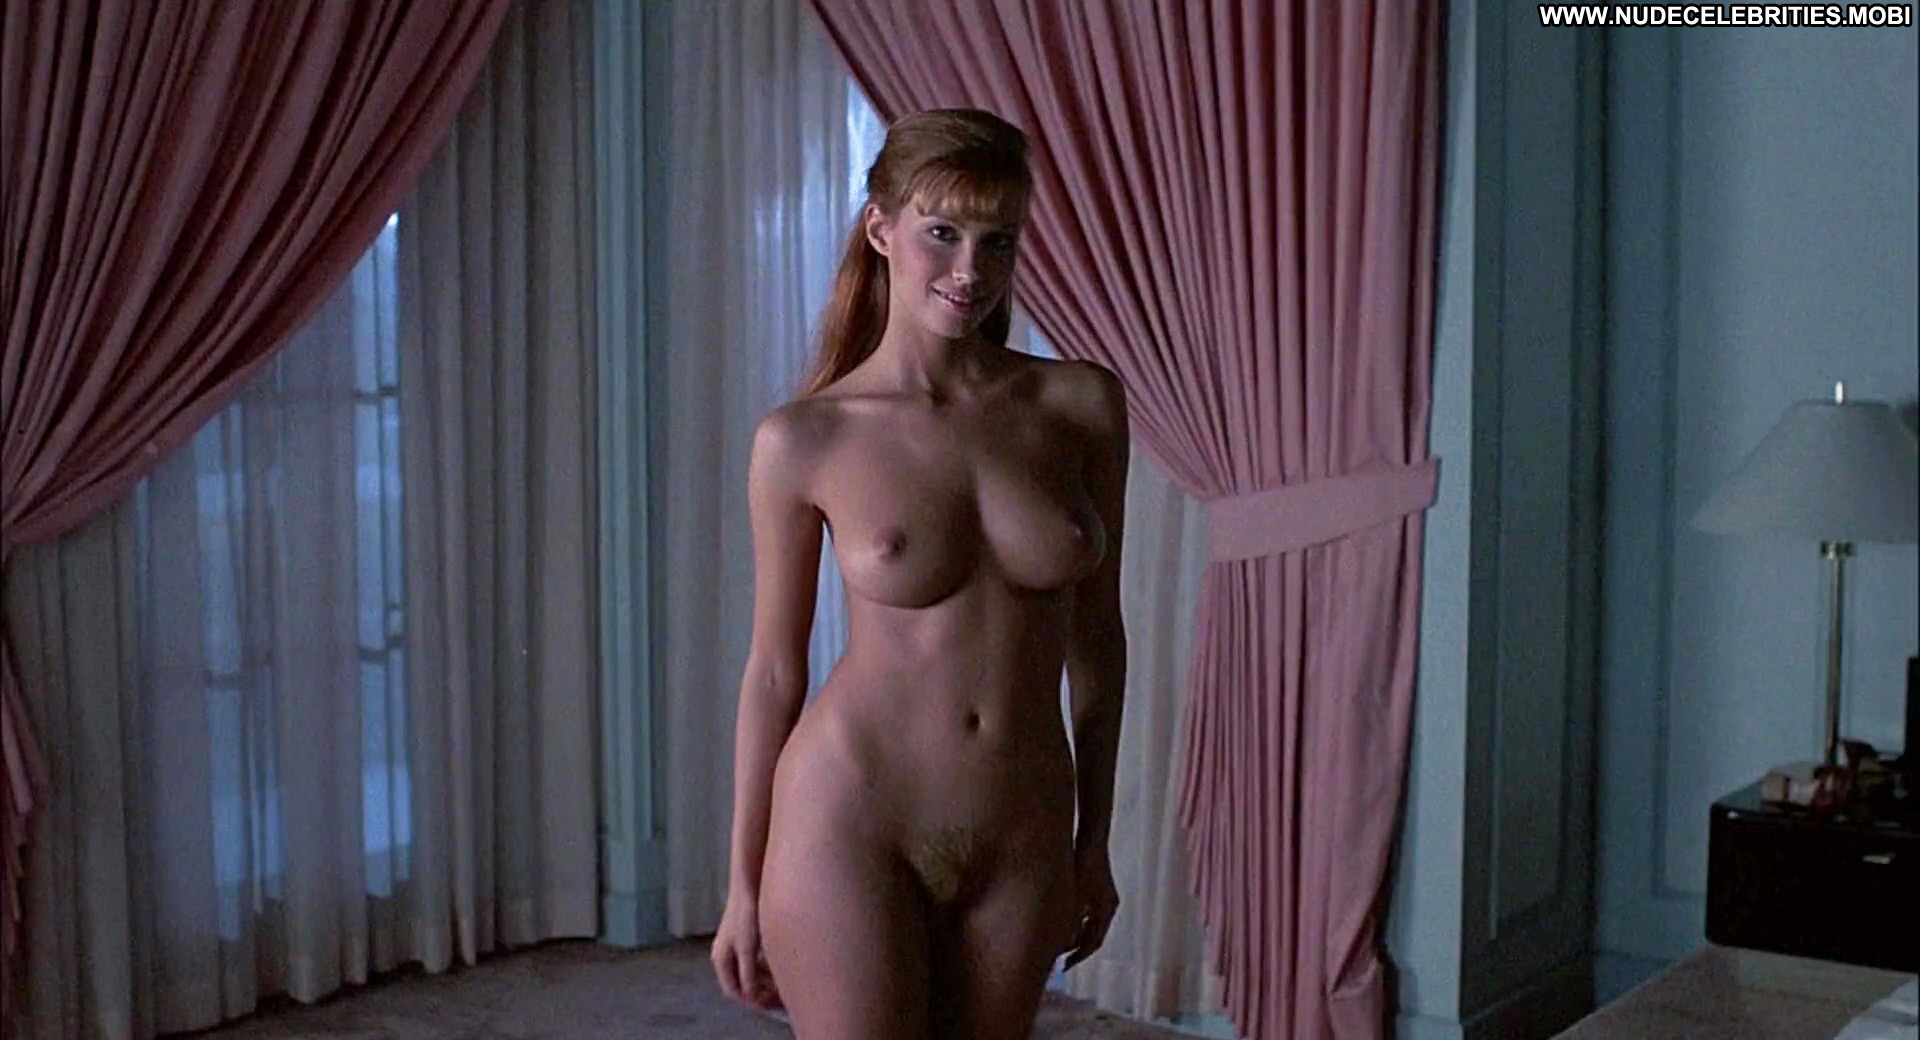 gabrielle naked sexy hot babe